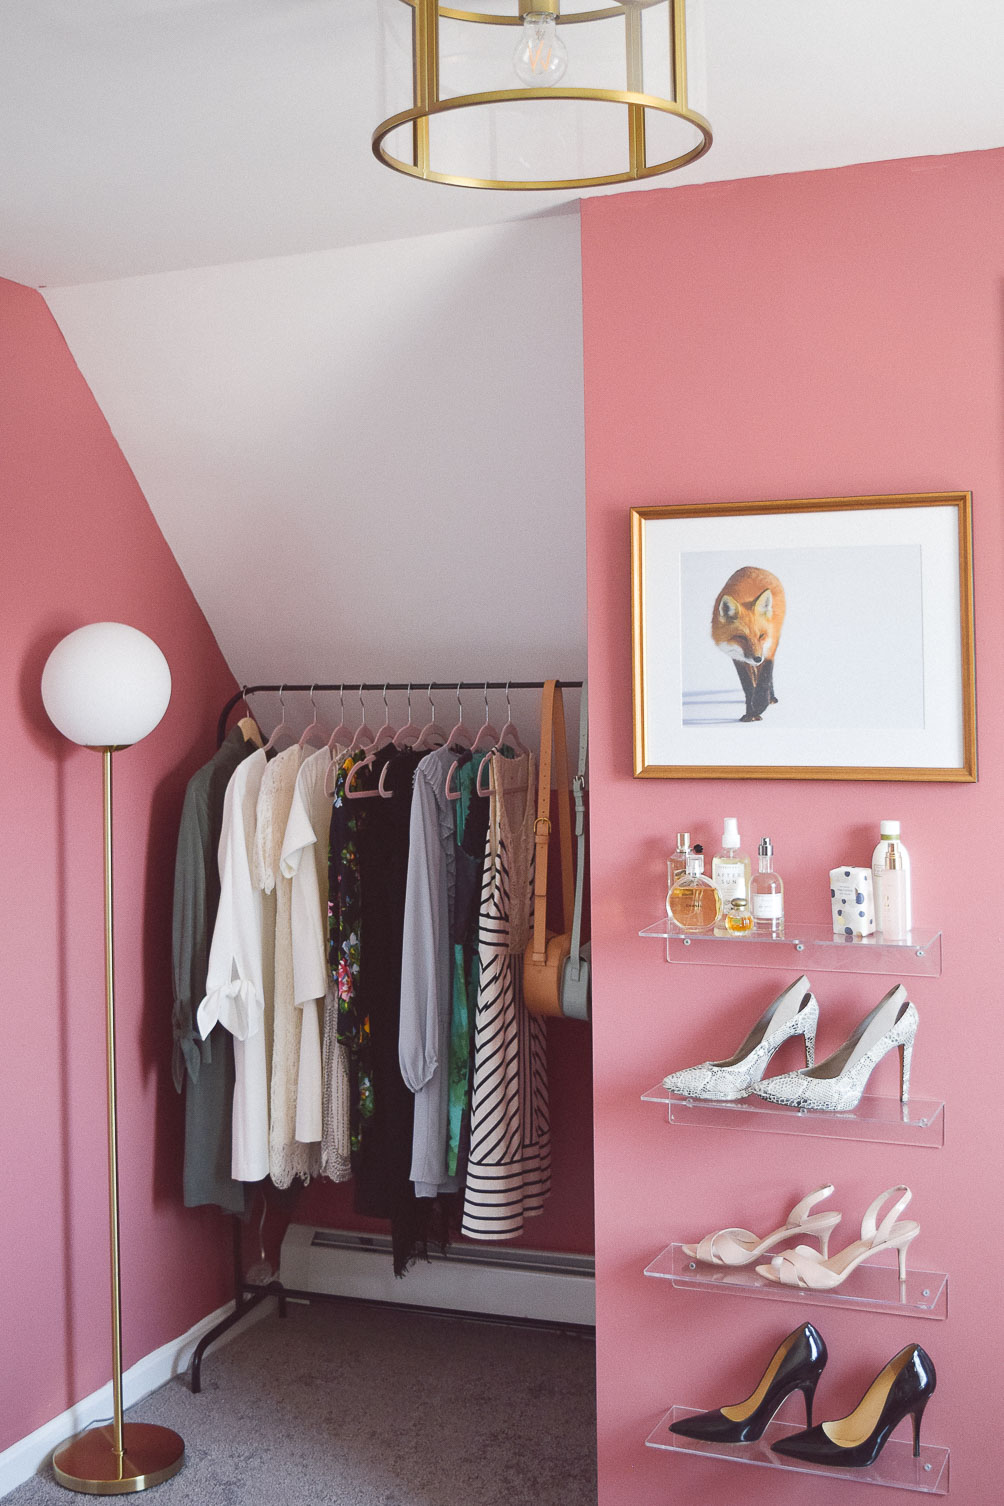 fashion blogger home office tour with garment rack and lucite shoe display